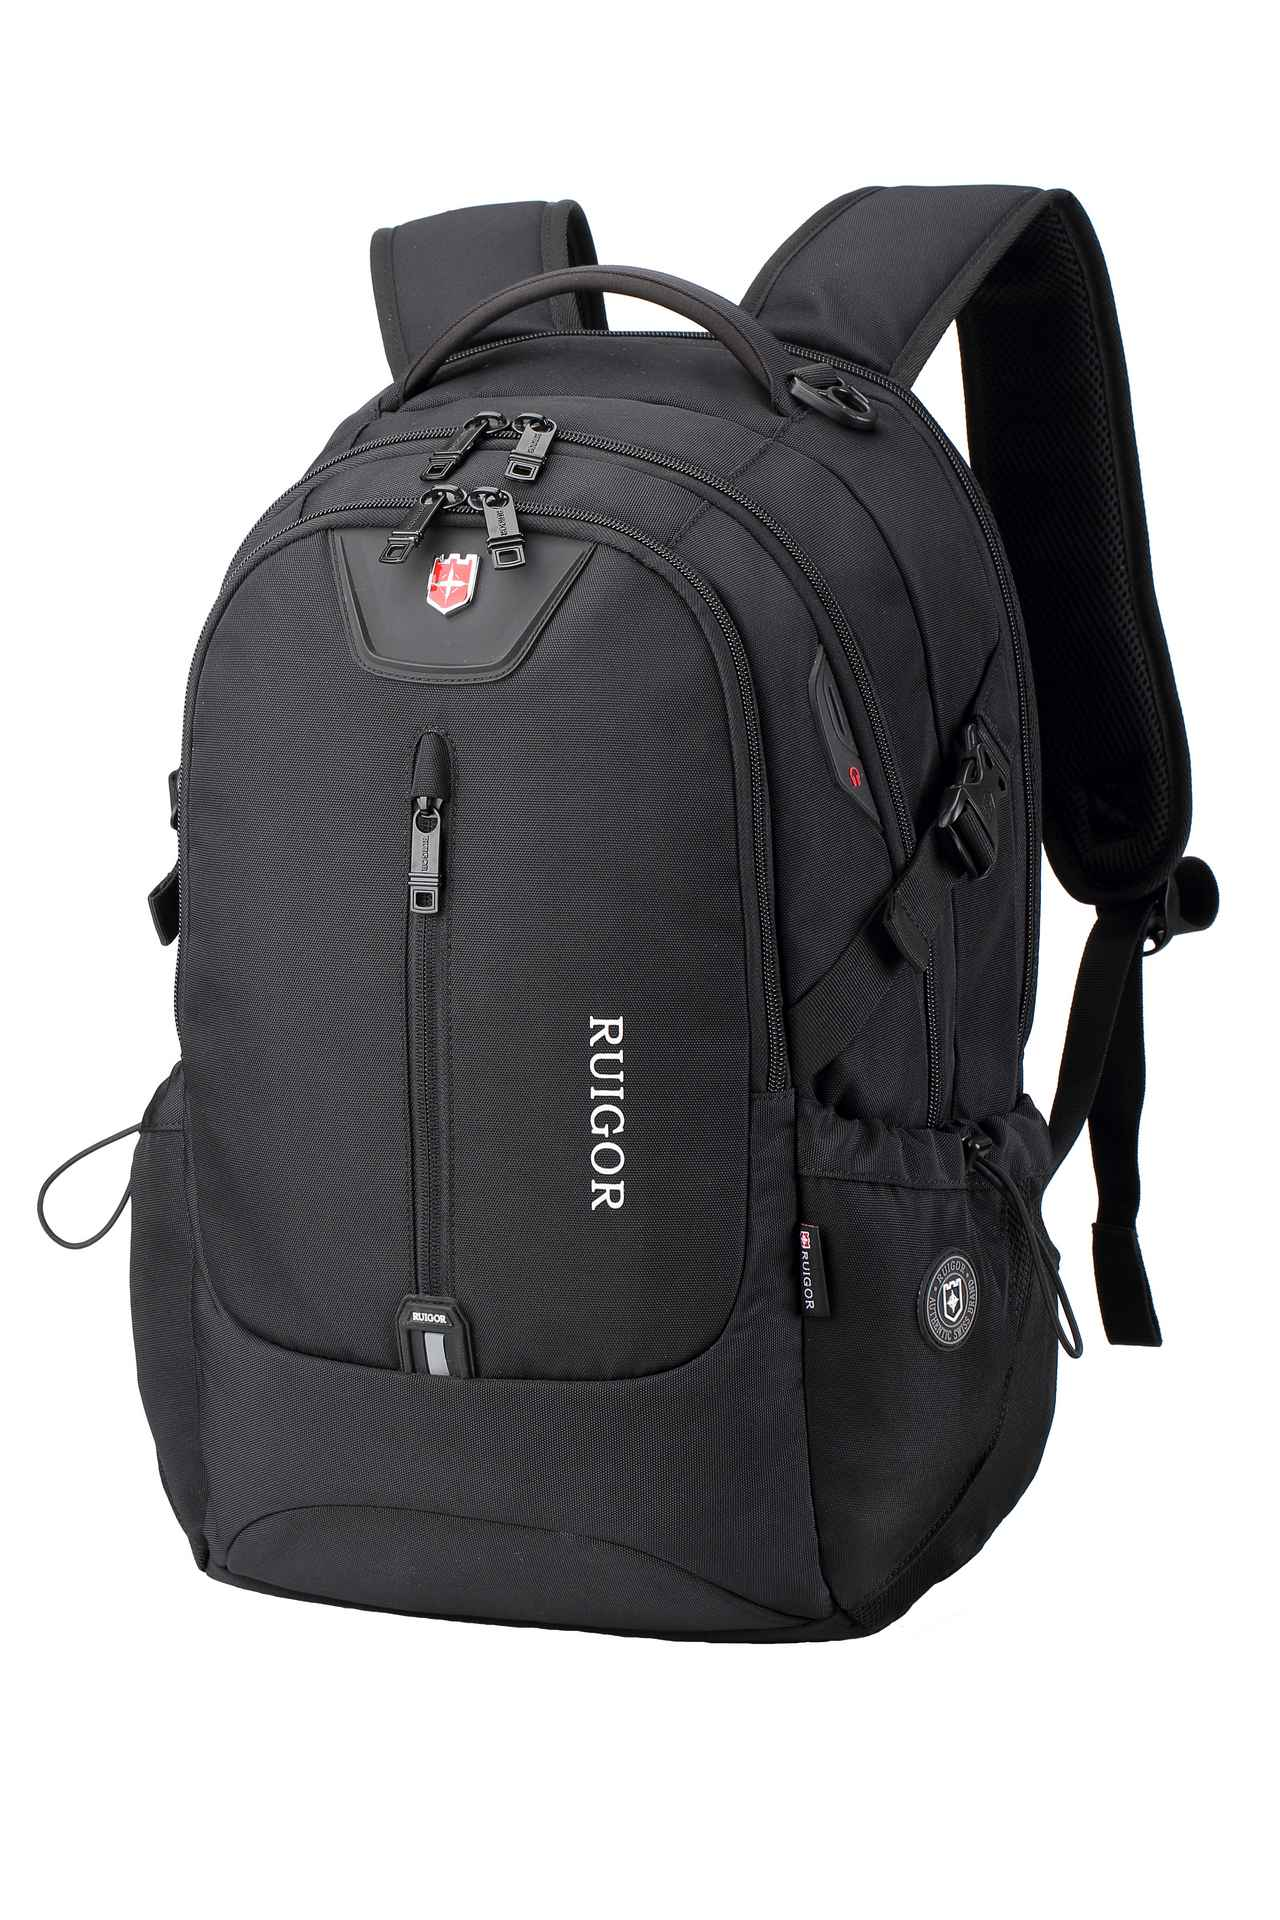 RUIGOR ICON 82 Laptop Backpack Black Large